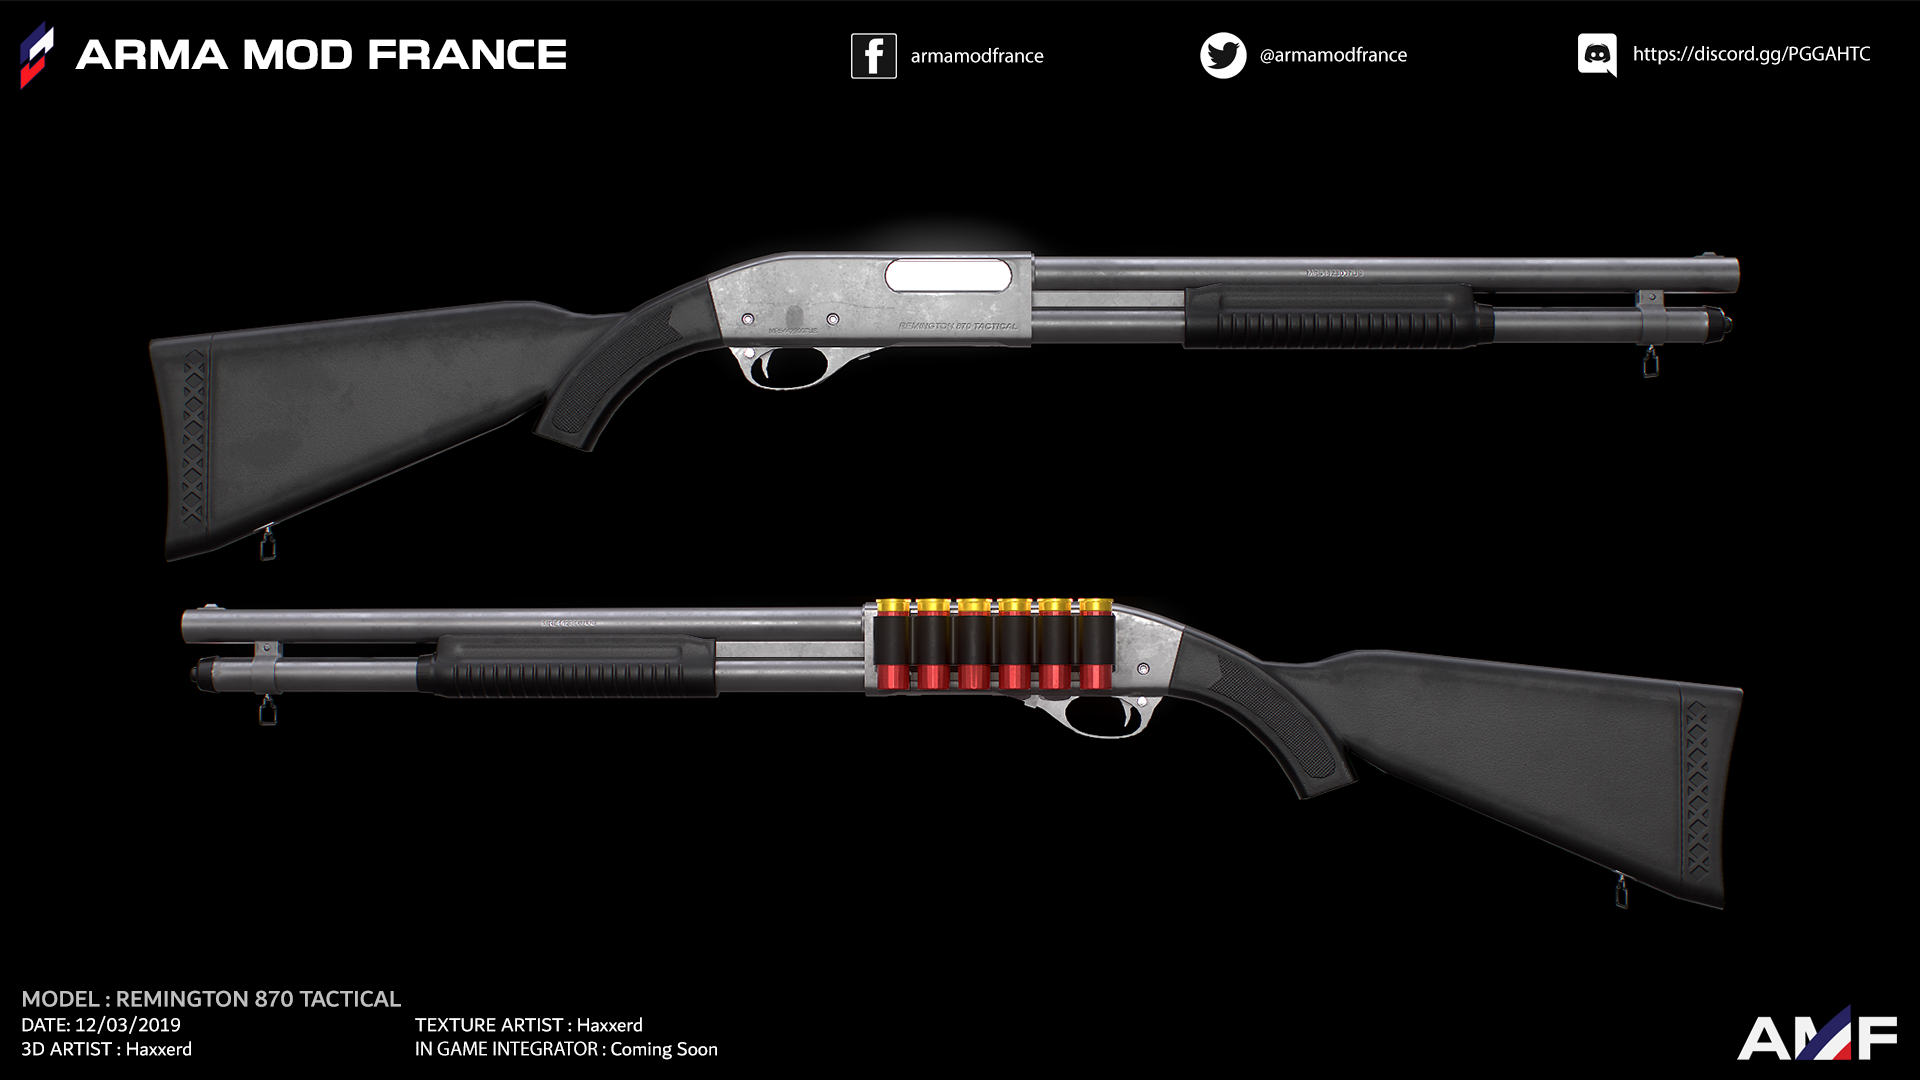 remington870Tactical01.png